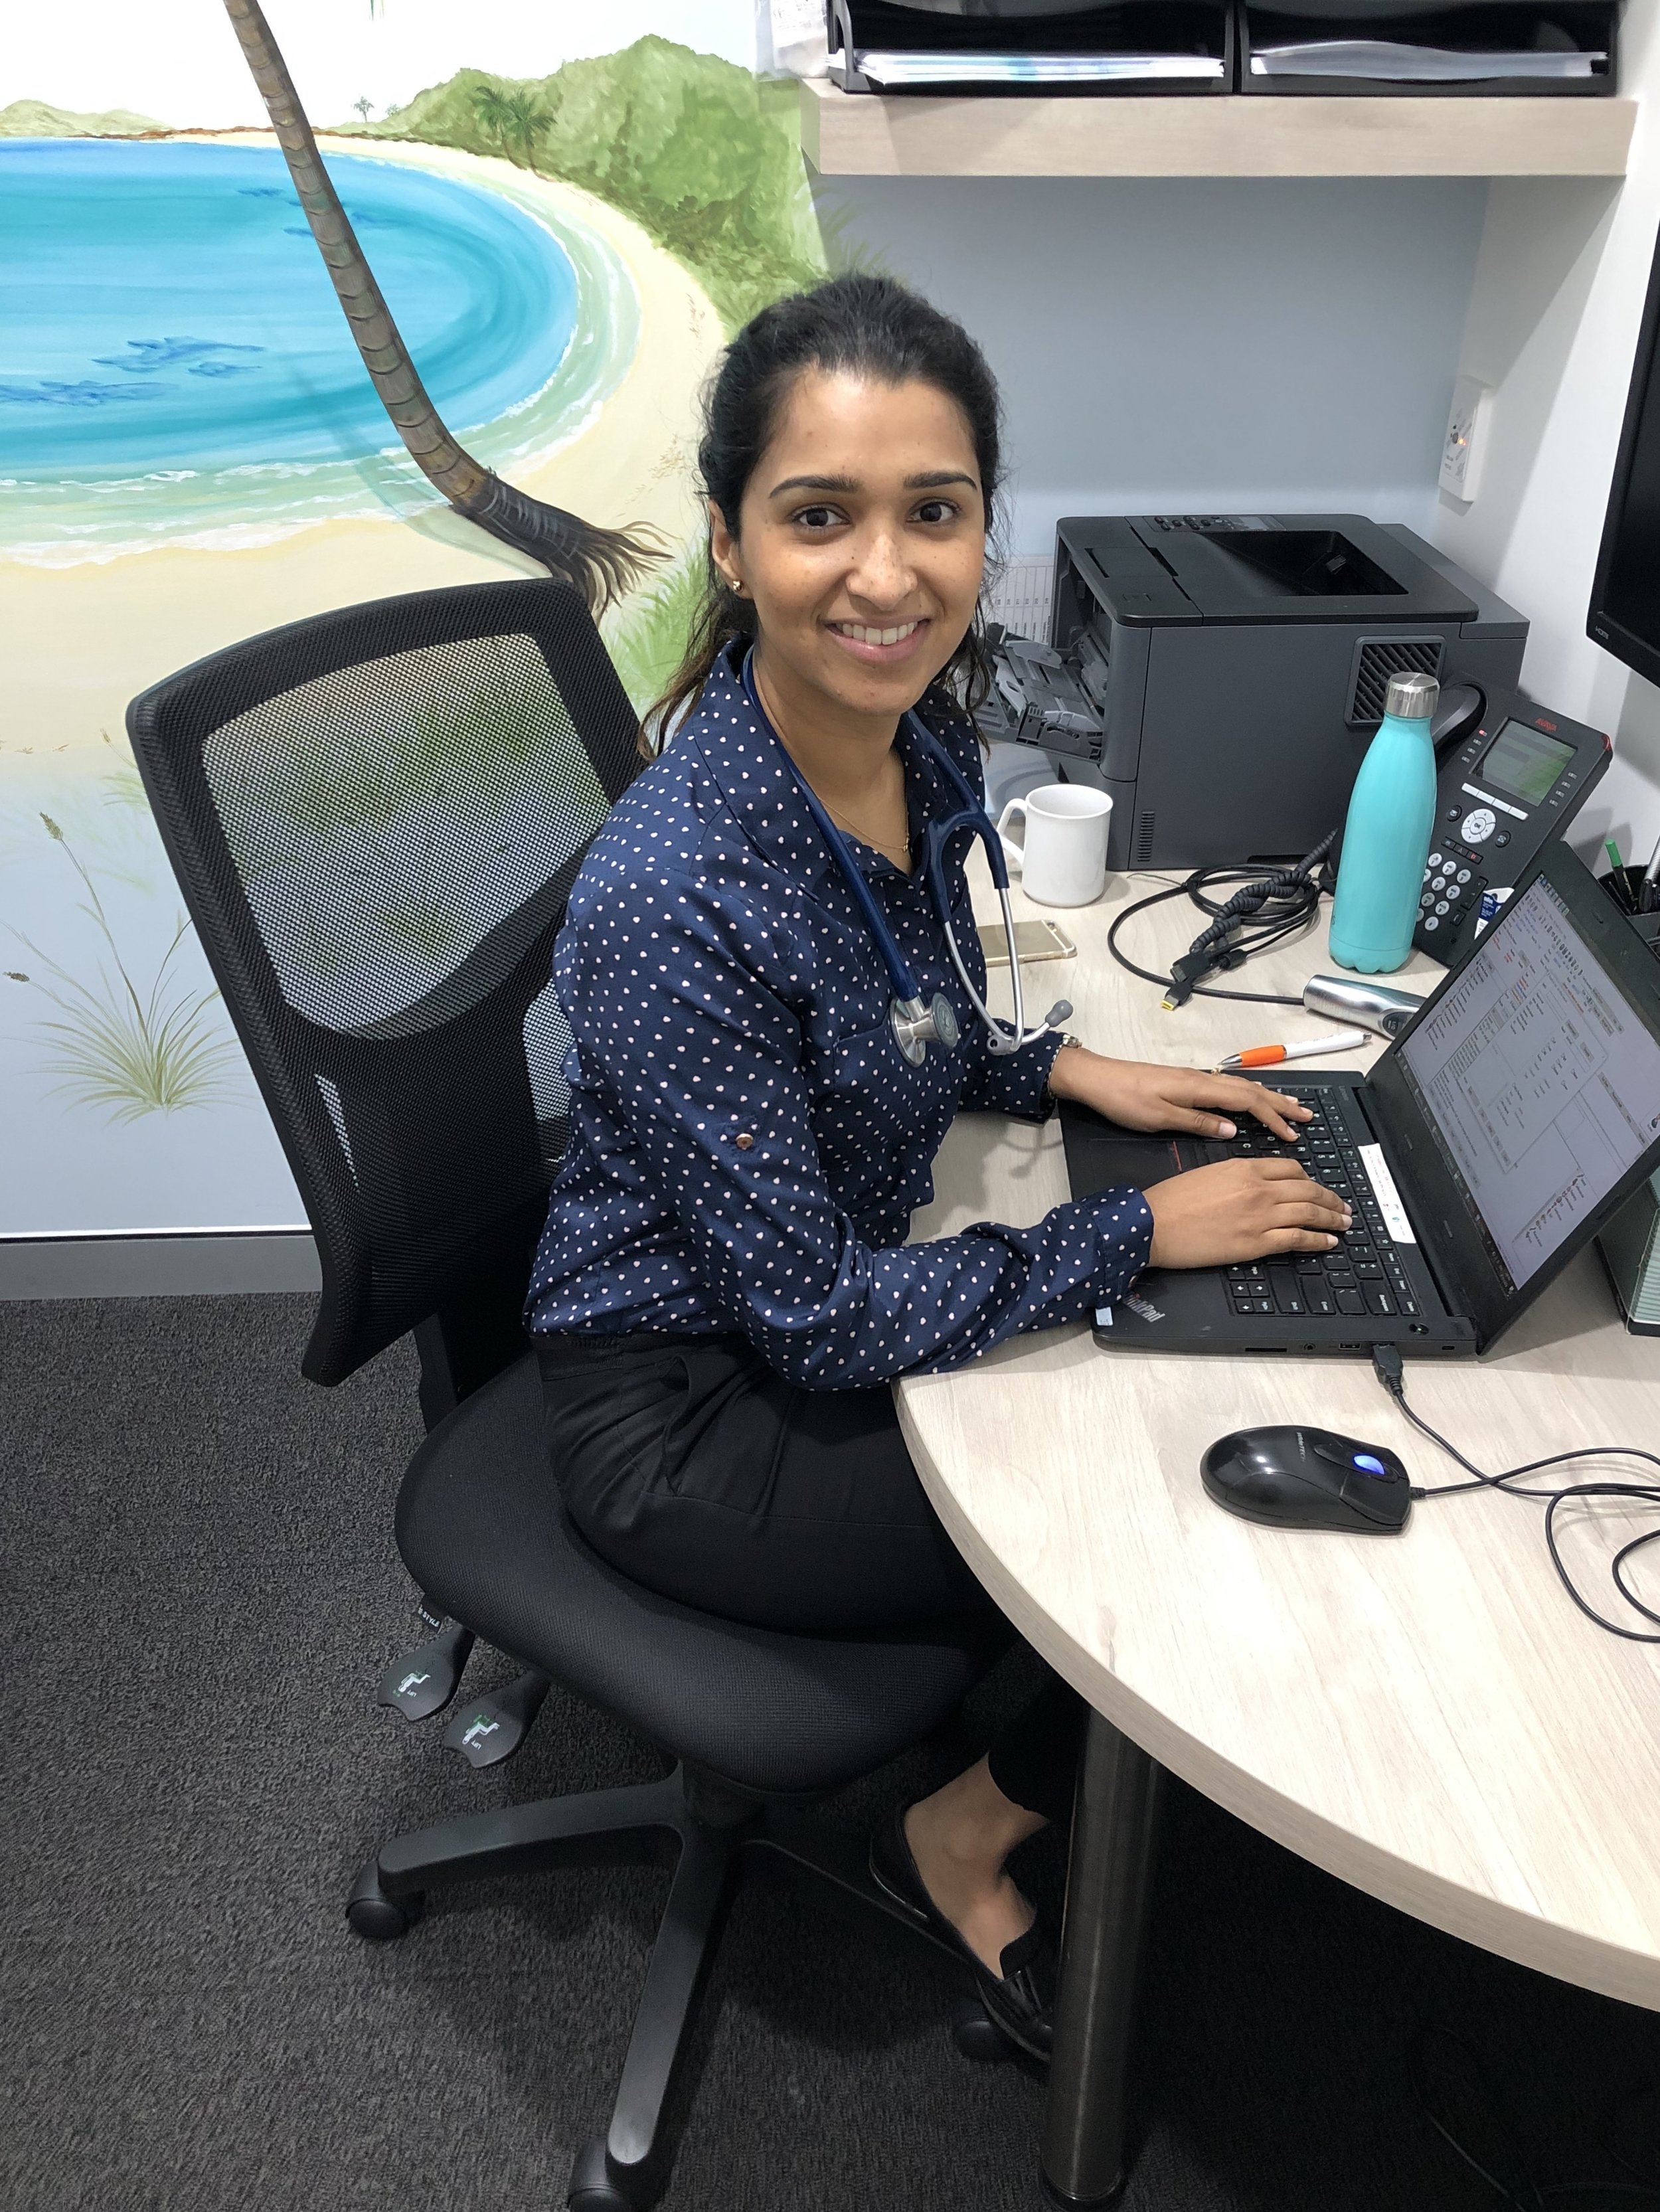 Dr Shashenka Withanage - BMed/M.D (UNSW), Family Planning Certificate (NSW Family Planning)Shashenka completed her medical degree at the University of New South Wales in 2014, graduating with Distinction. Shashenka trained at several hospitals in Sydney including Hornsby-Kuringai Hospital, St Vincent's Hospital and Mona Vale Hospital. She has a keen interest in Women's health and preventative health care. She enjoys the diversity of general practice and the holistic approach to health care that it provides.Shashenka enjoys spending her spare time with her family and friends. We are very pleased to announce that Shashenka is the 2018 NSW/ACT RACGP Registrar of the year.